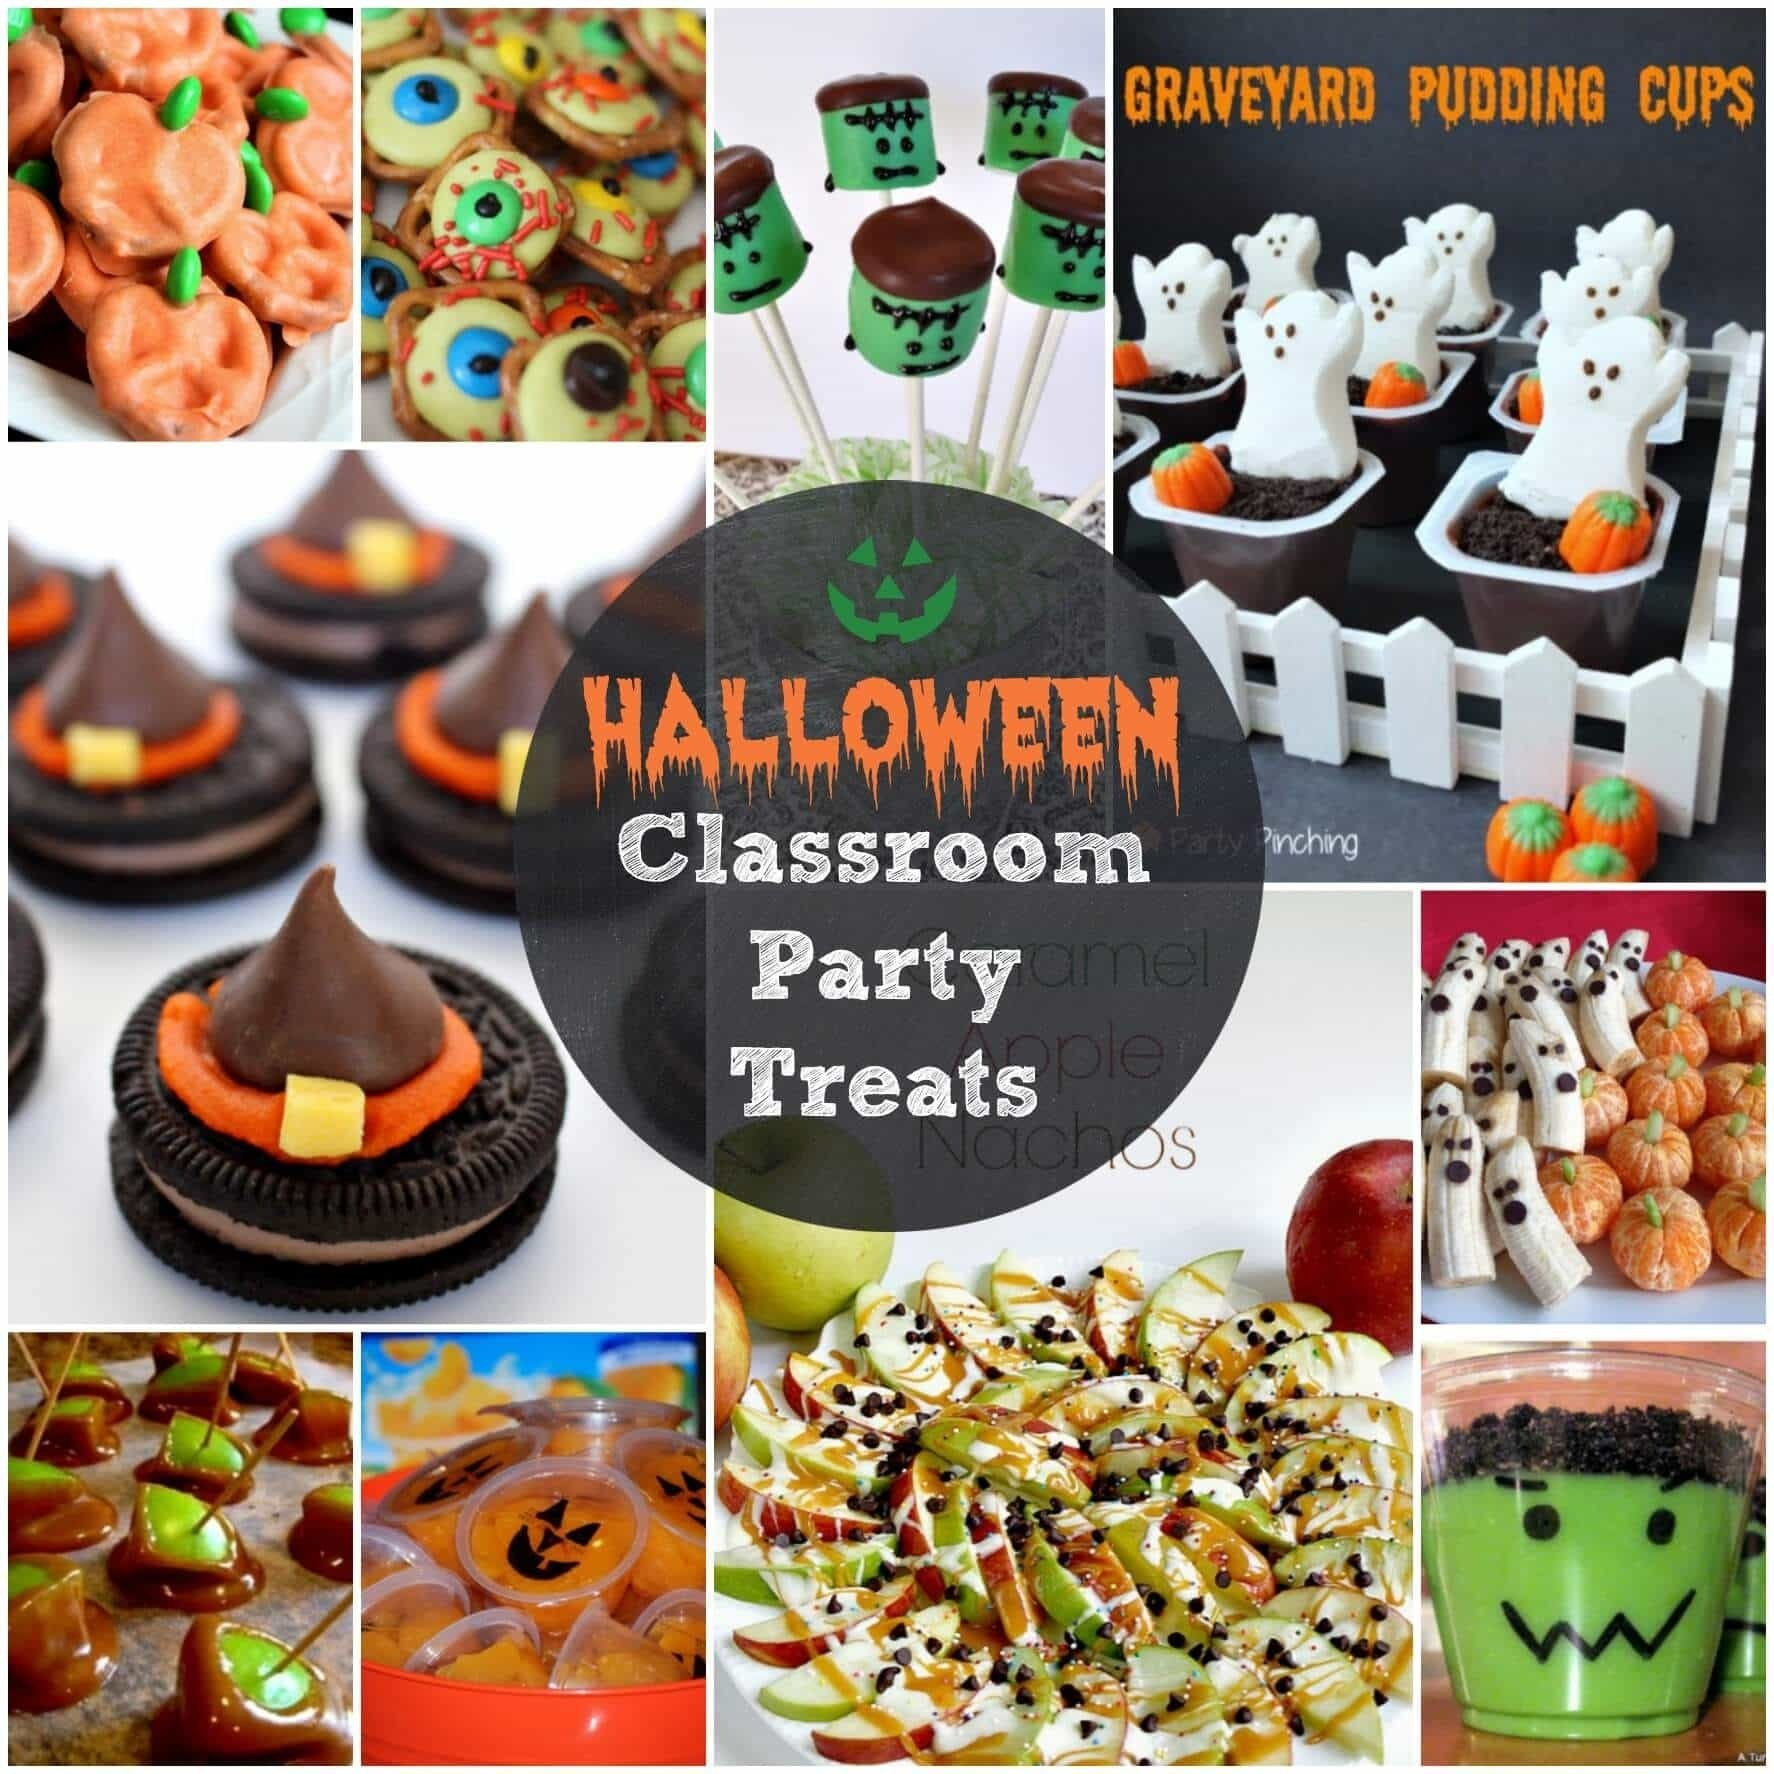 10 Beautiful Halloween Treat Ideas For Kids Party easy halloween treats for your classroom parties or just for fun 1 2020